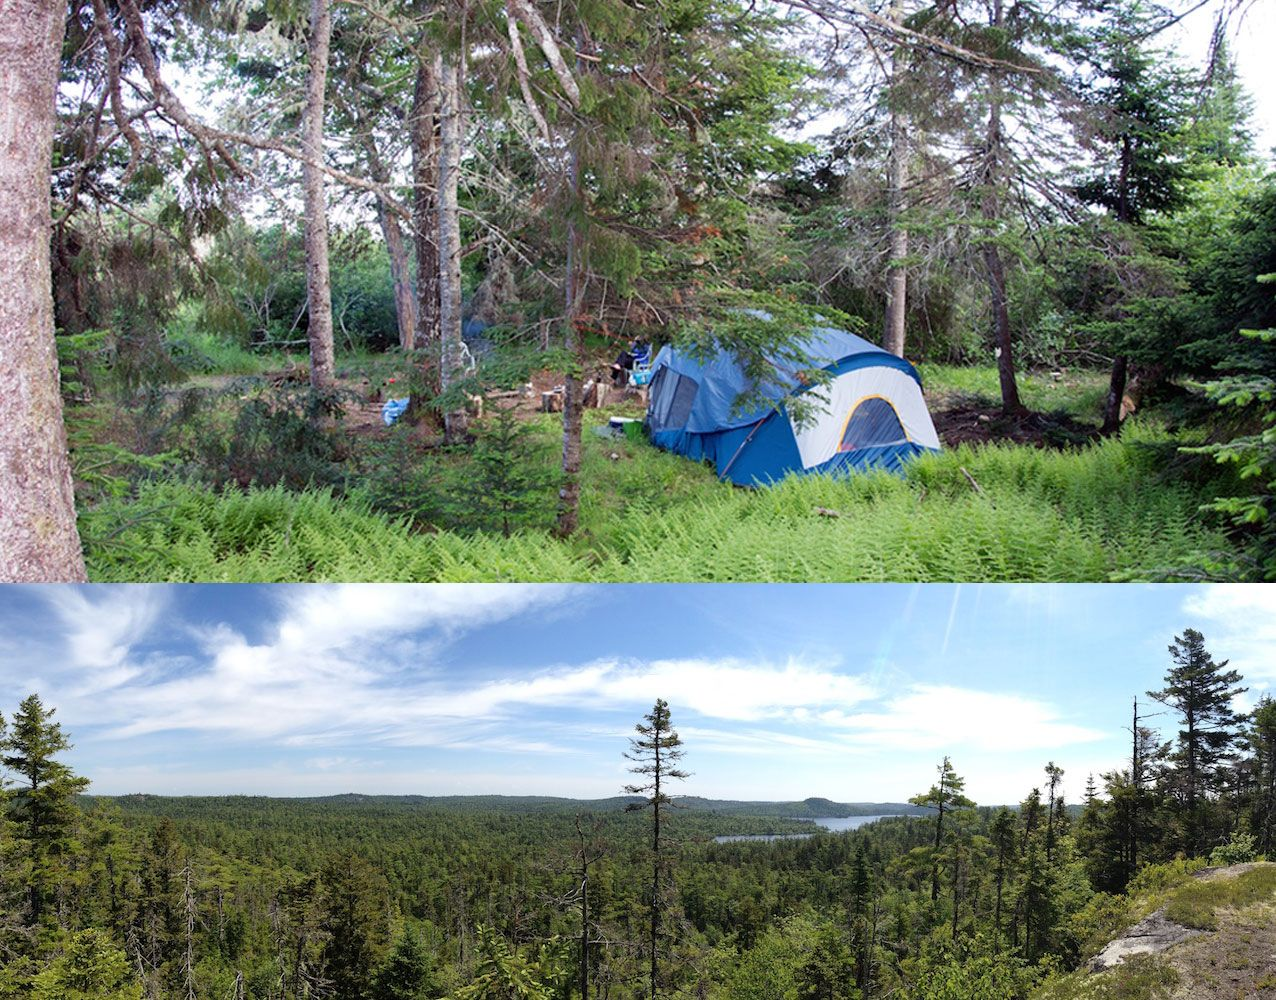 The River Island Wild Camp in Nova Scotia, Canada. The perfect adventure camping experience.